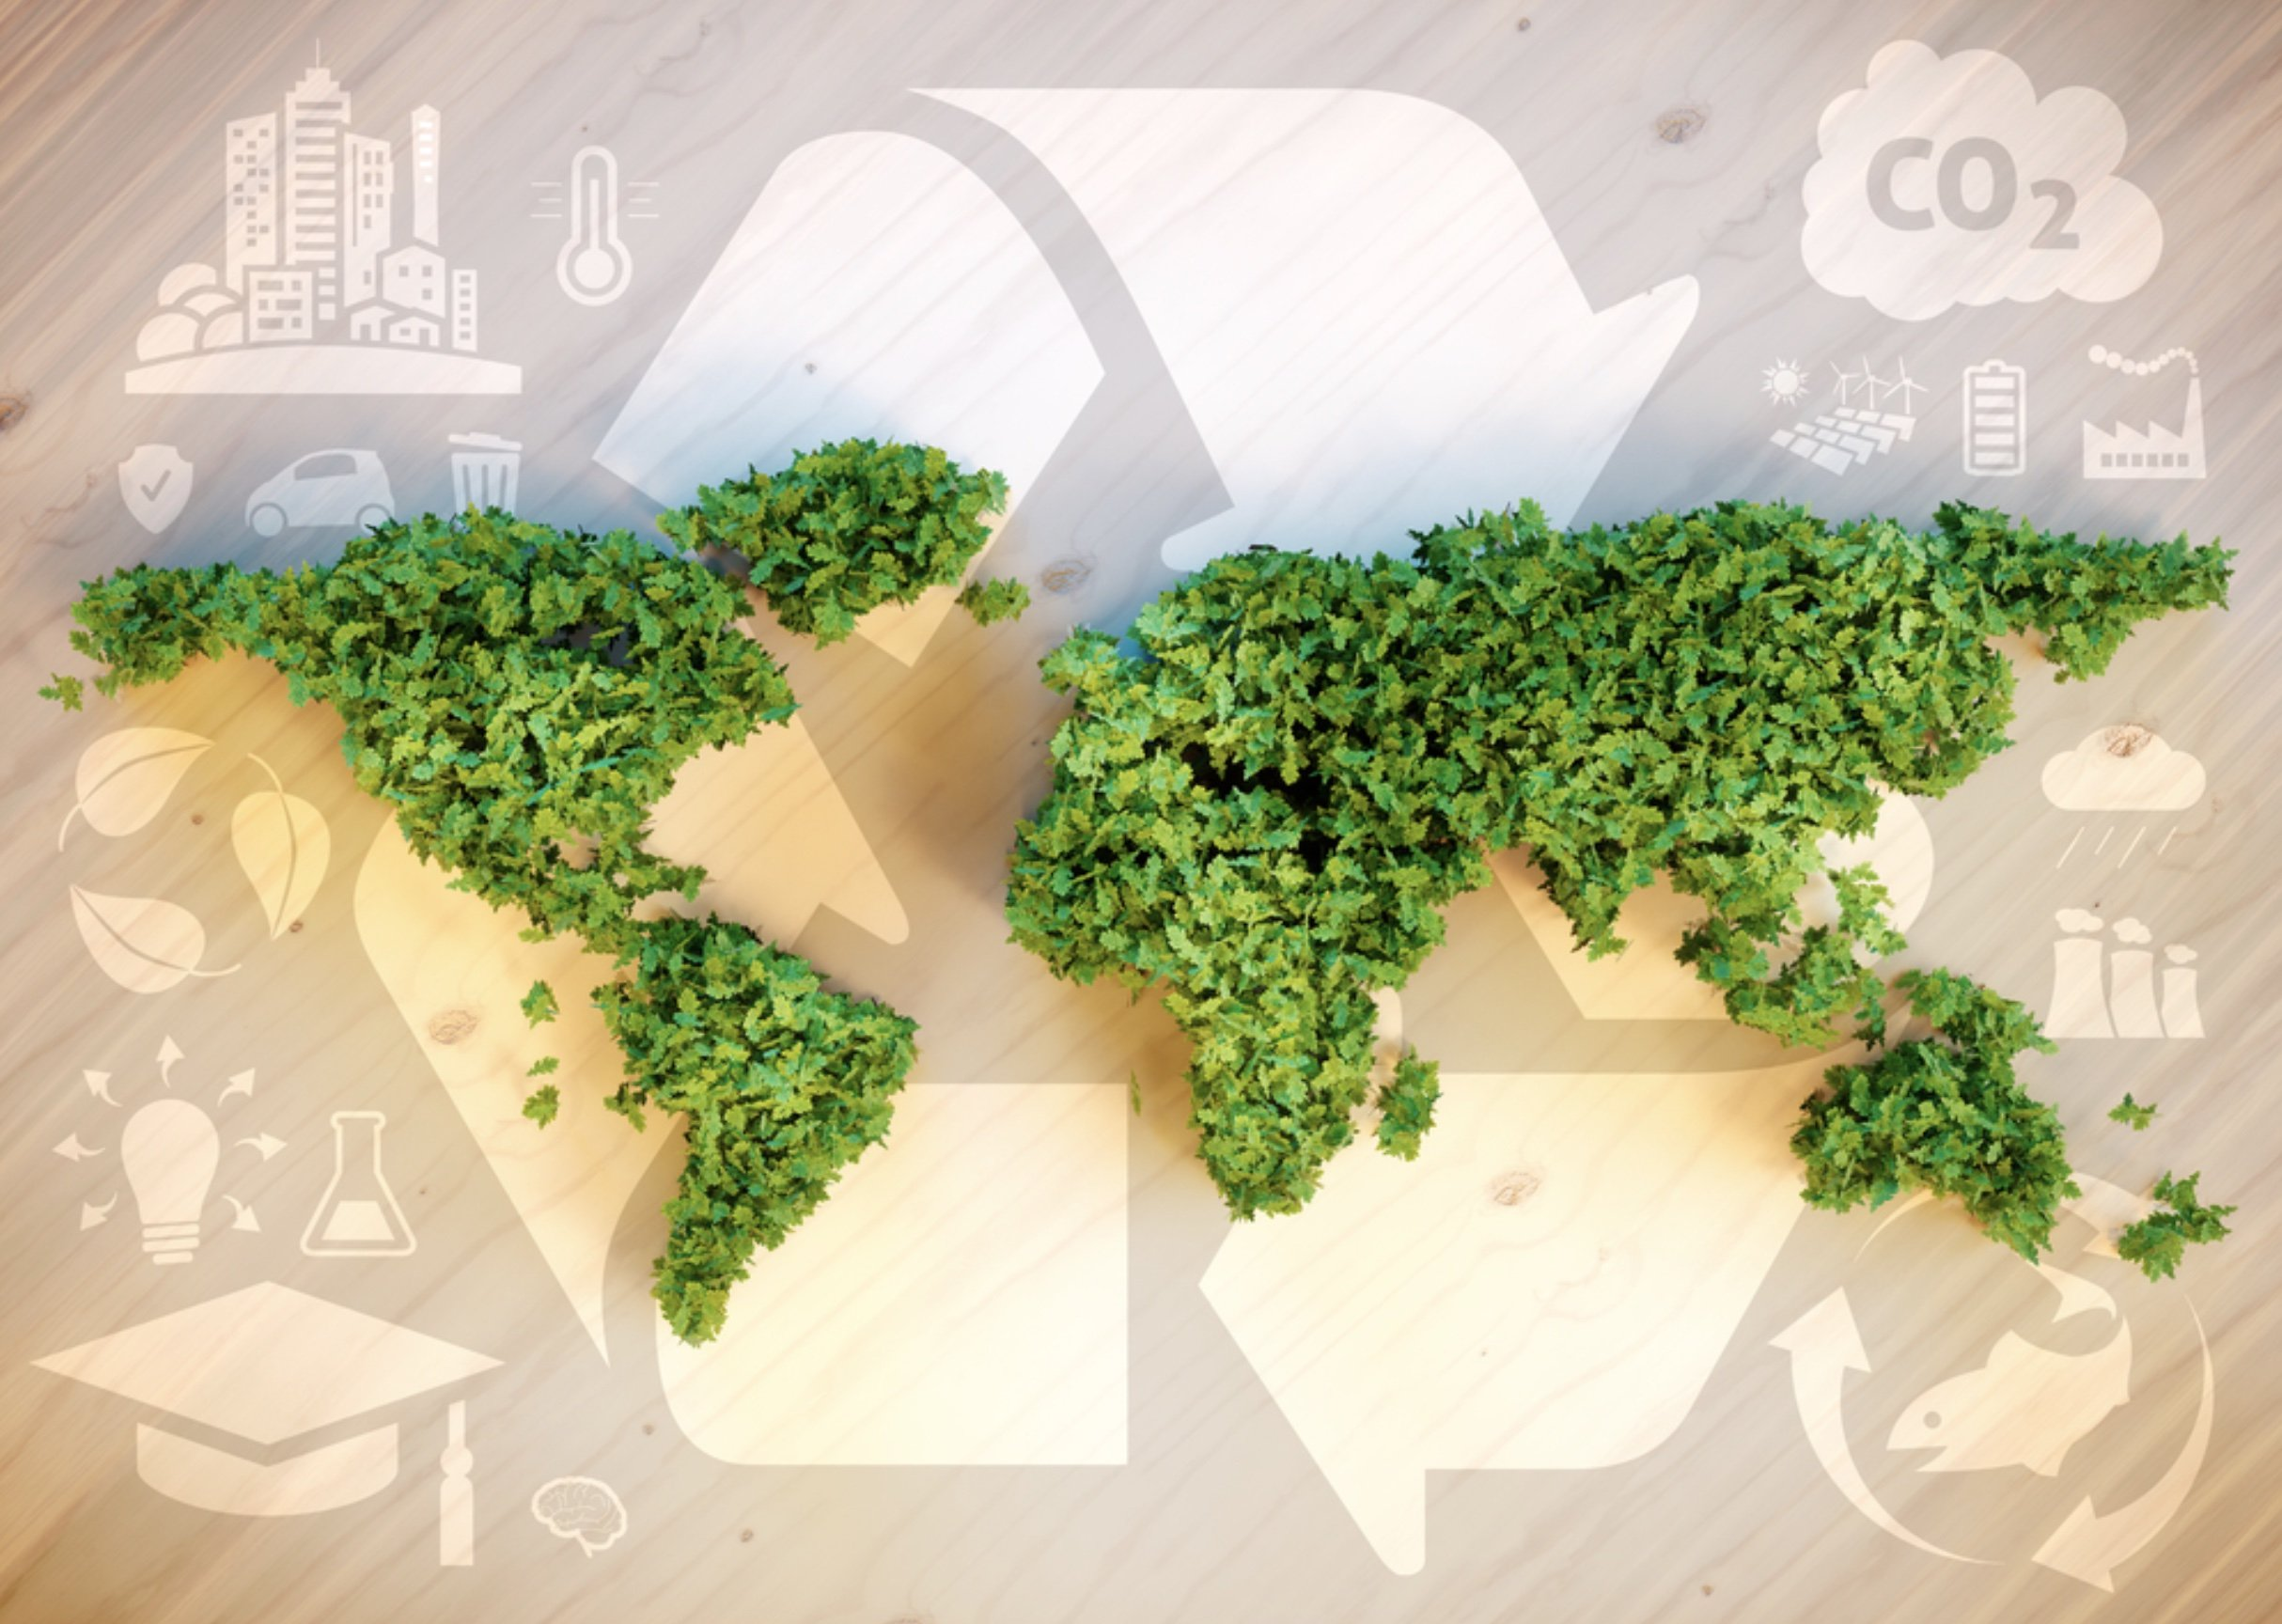 How To Save The World With SAP